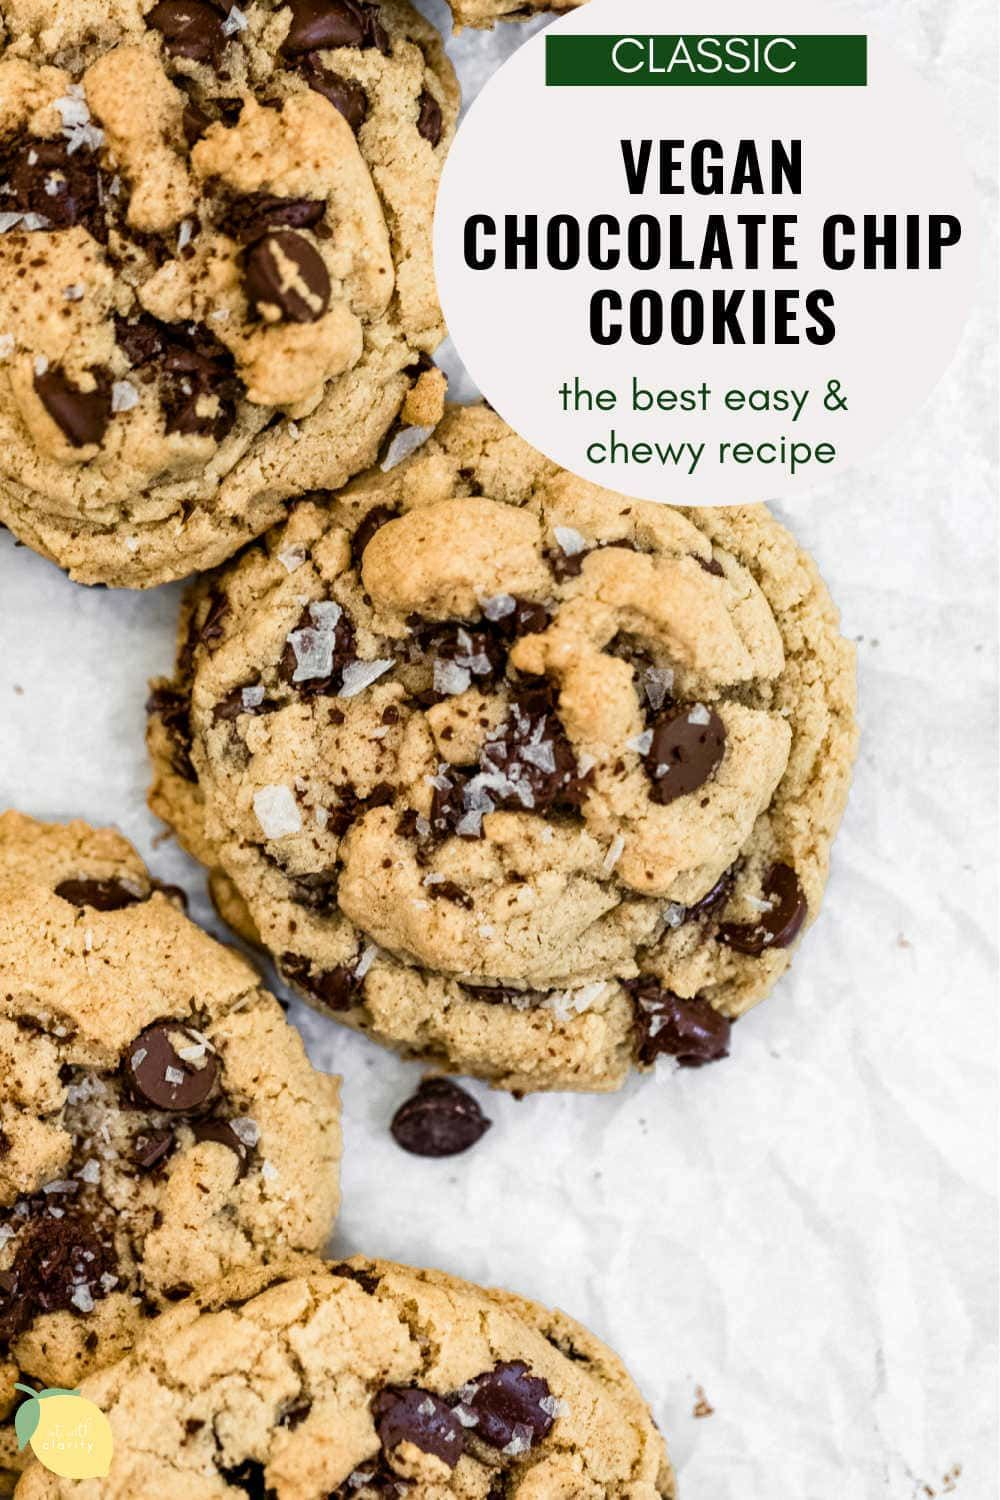 Classic Vegan Chocolate Chip Cookies Eat With Clarity Recipe In 2020 Vegan Chocolate Chip Cookies Vegan Chocolate Chip Chocolate Chip Cookies